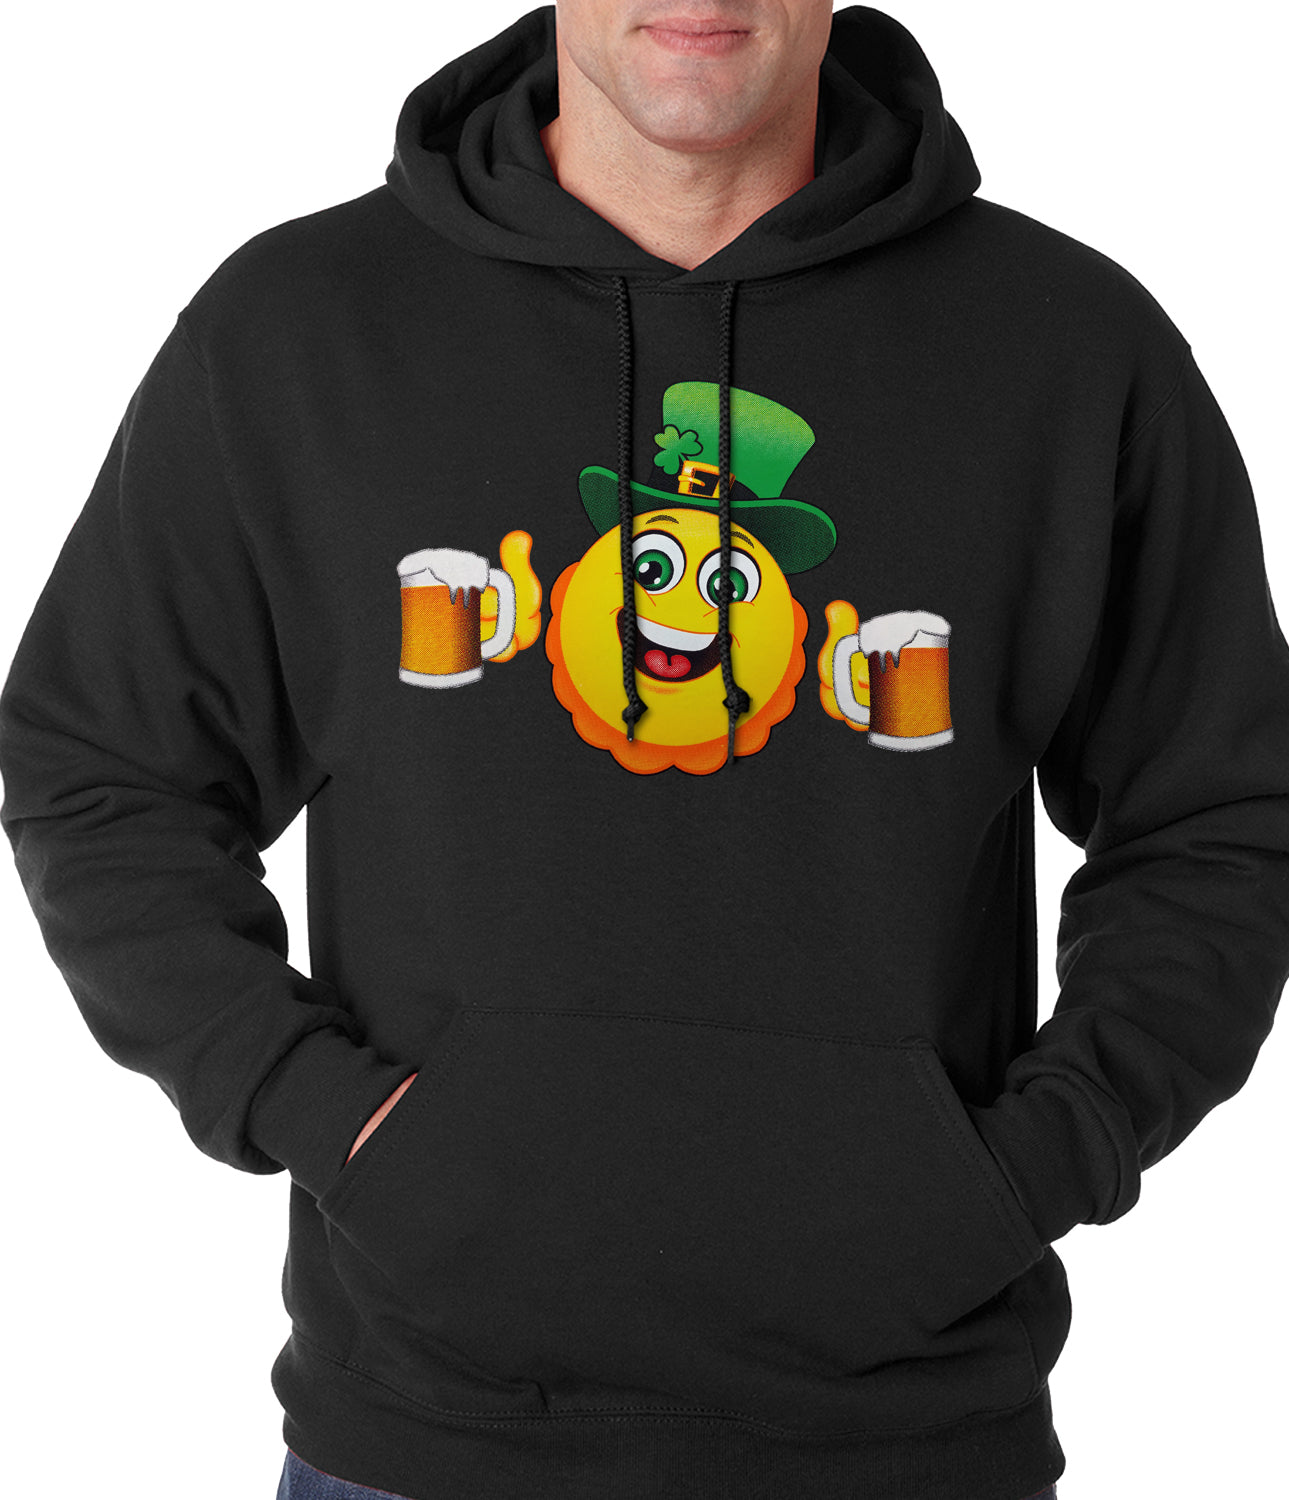 Irish St. Patrick's Day Drinking Leprechaun Emoji Adult Hoodie